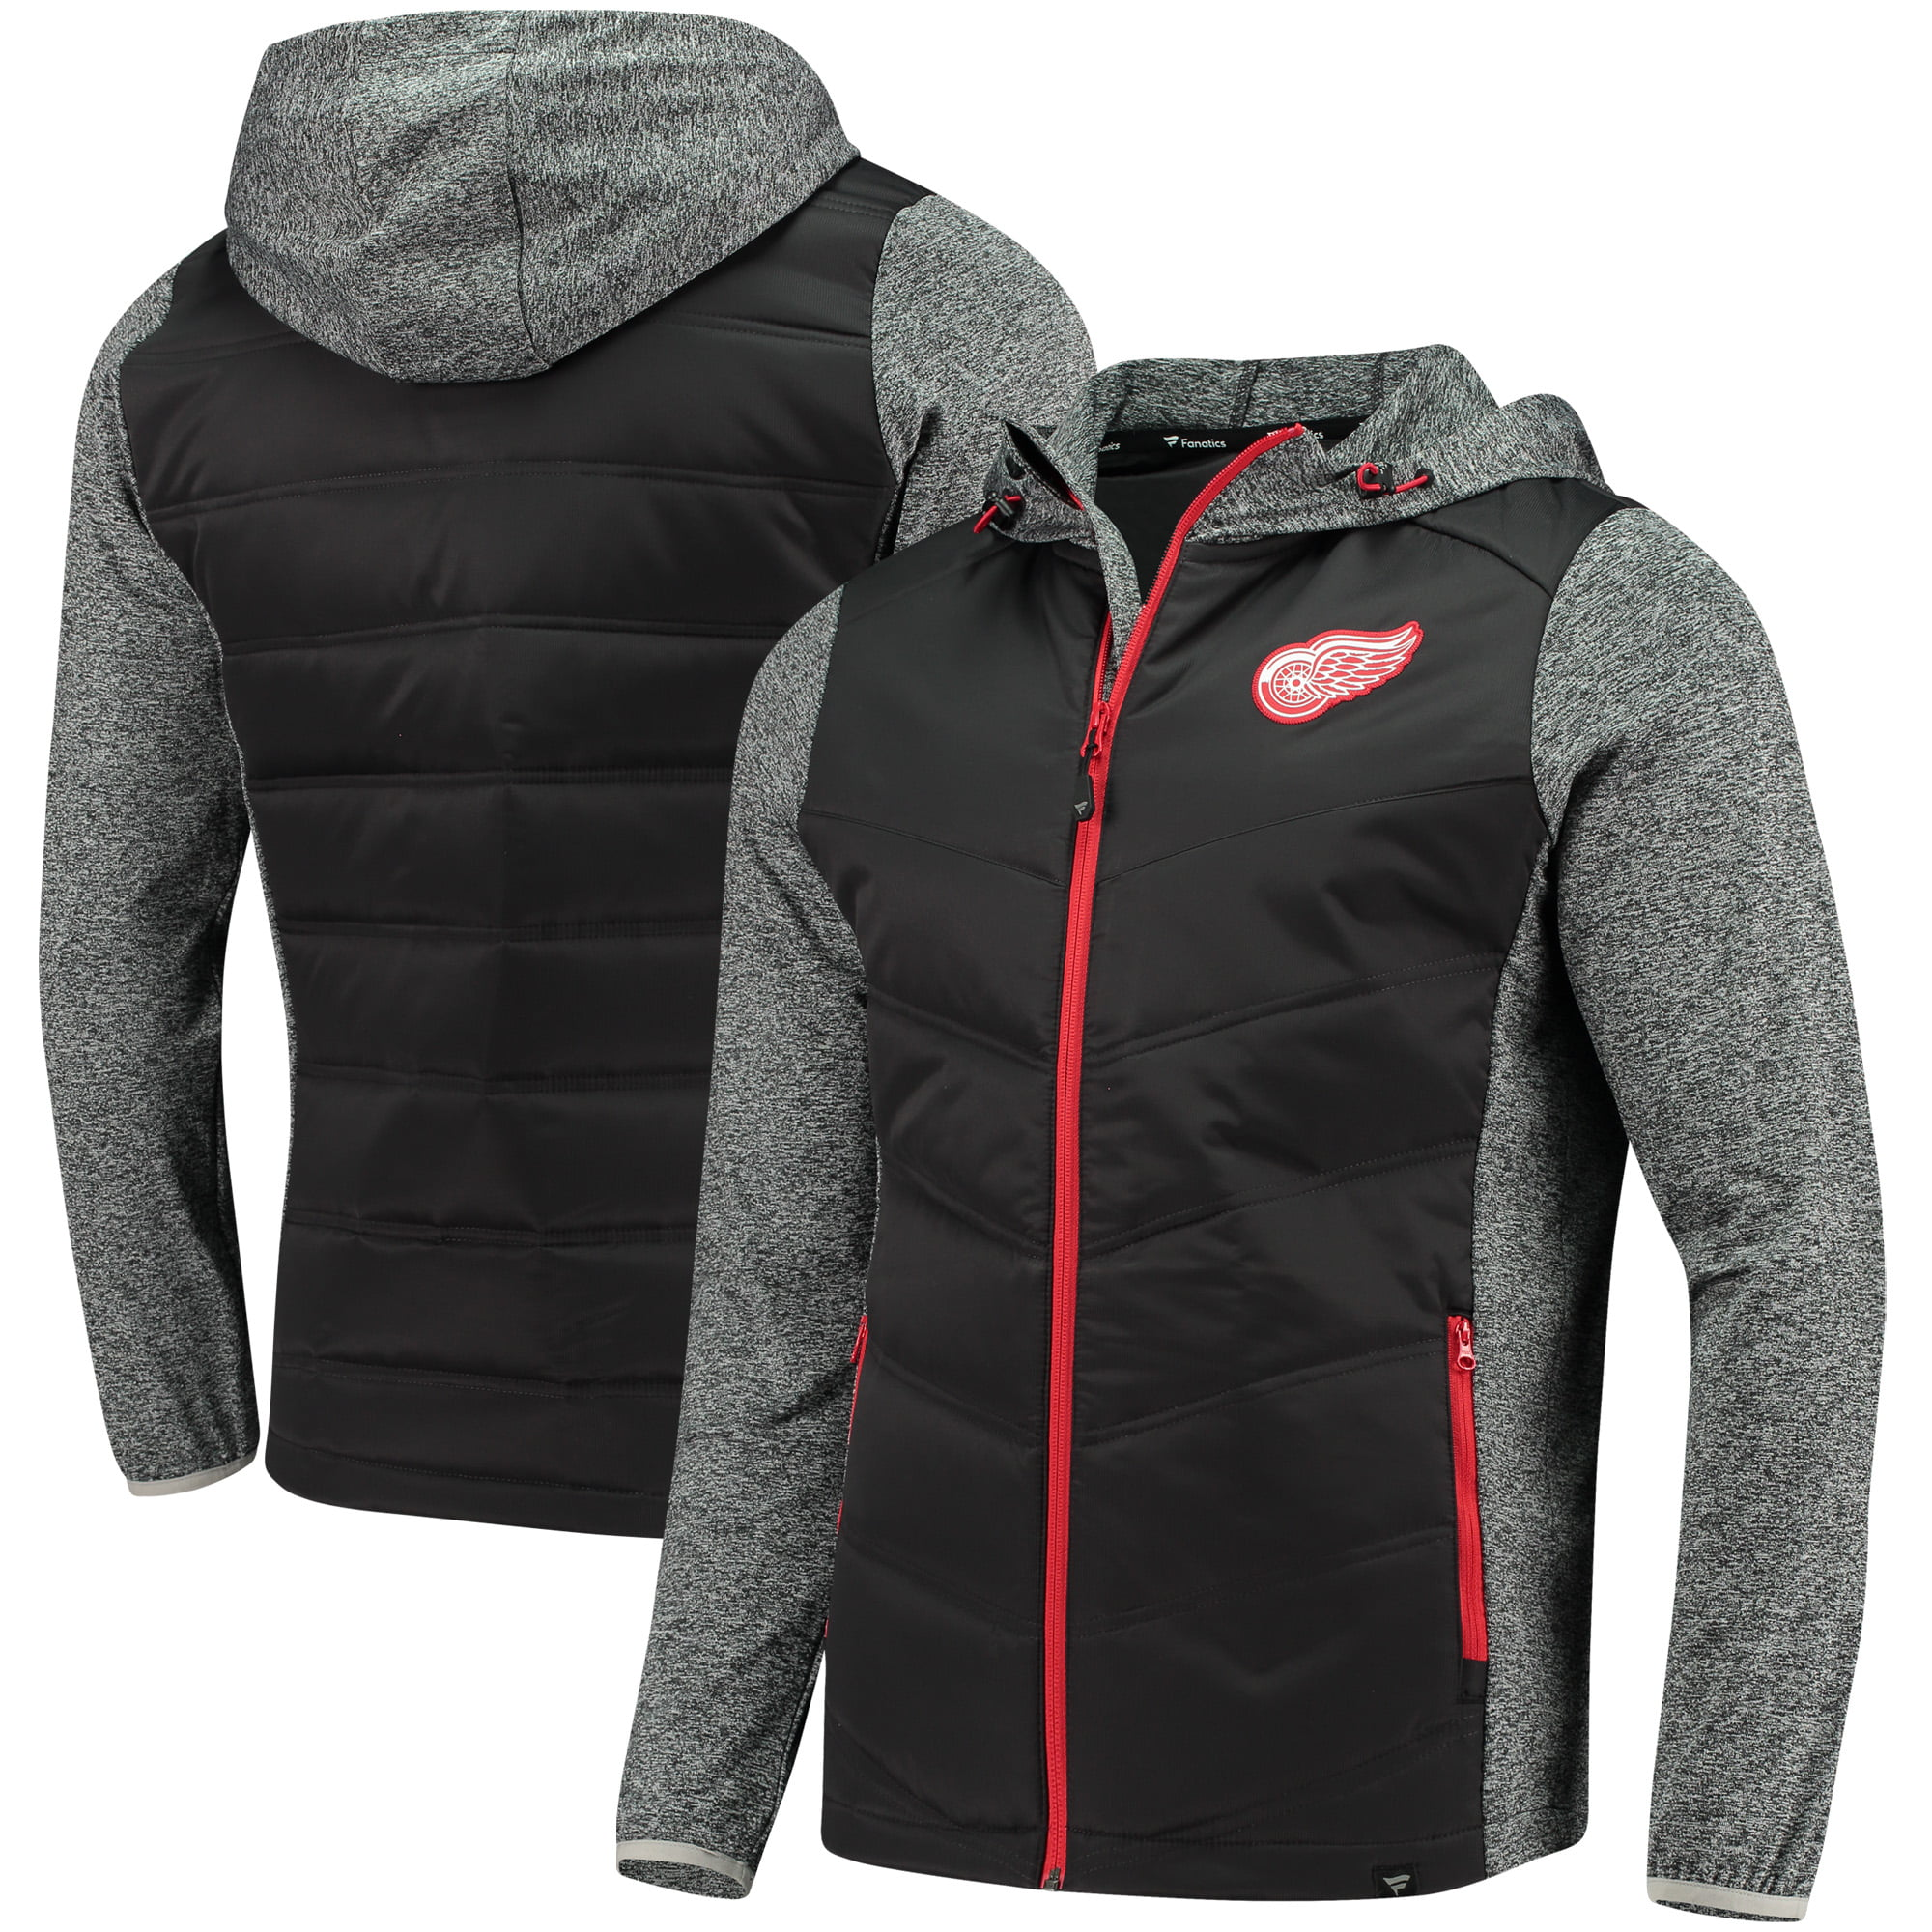 Detroit Red Wings Fanatics Branded Static Insulated Full-Zip Jacket Black Heathered Gray by BoxSeat Clothing - SOURCED